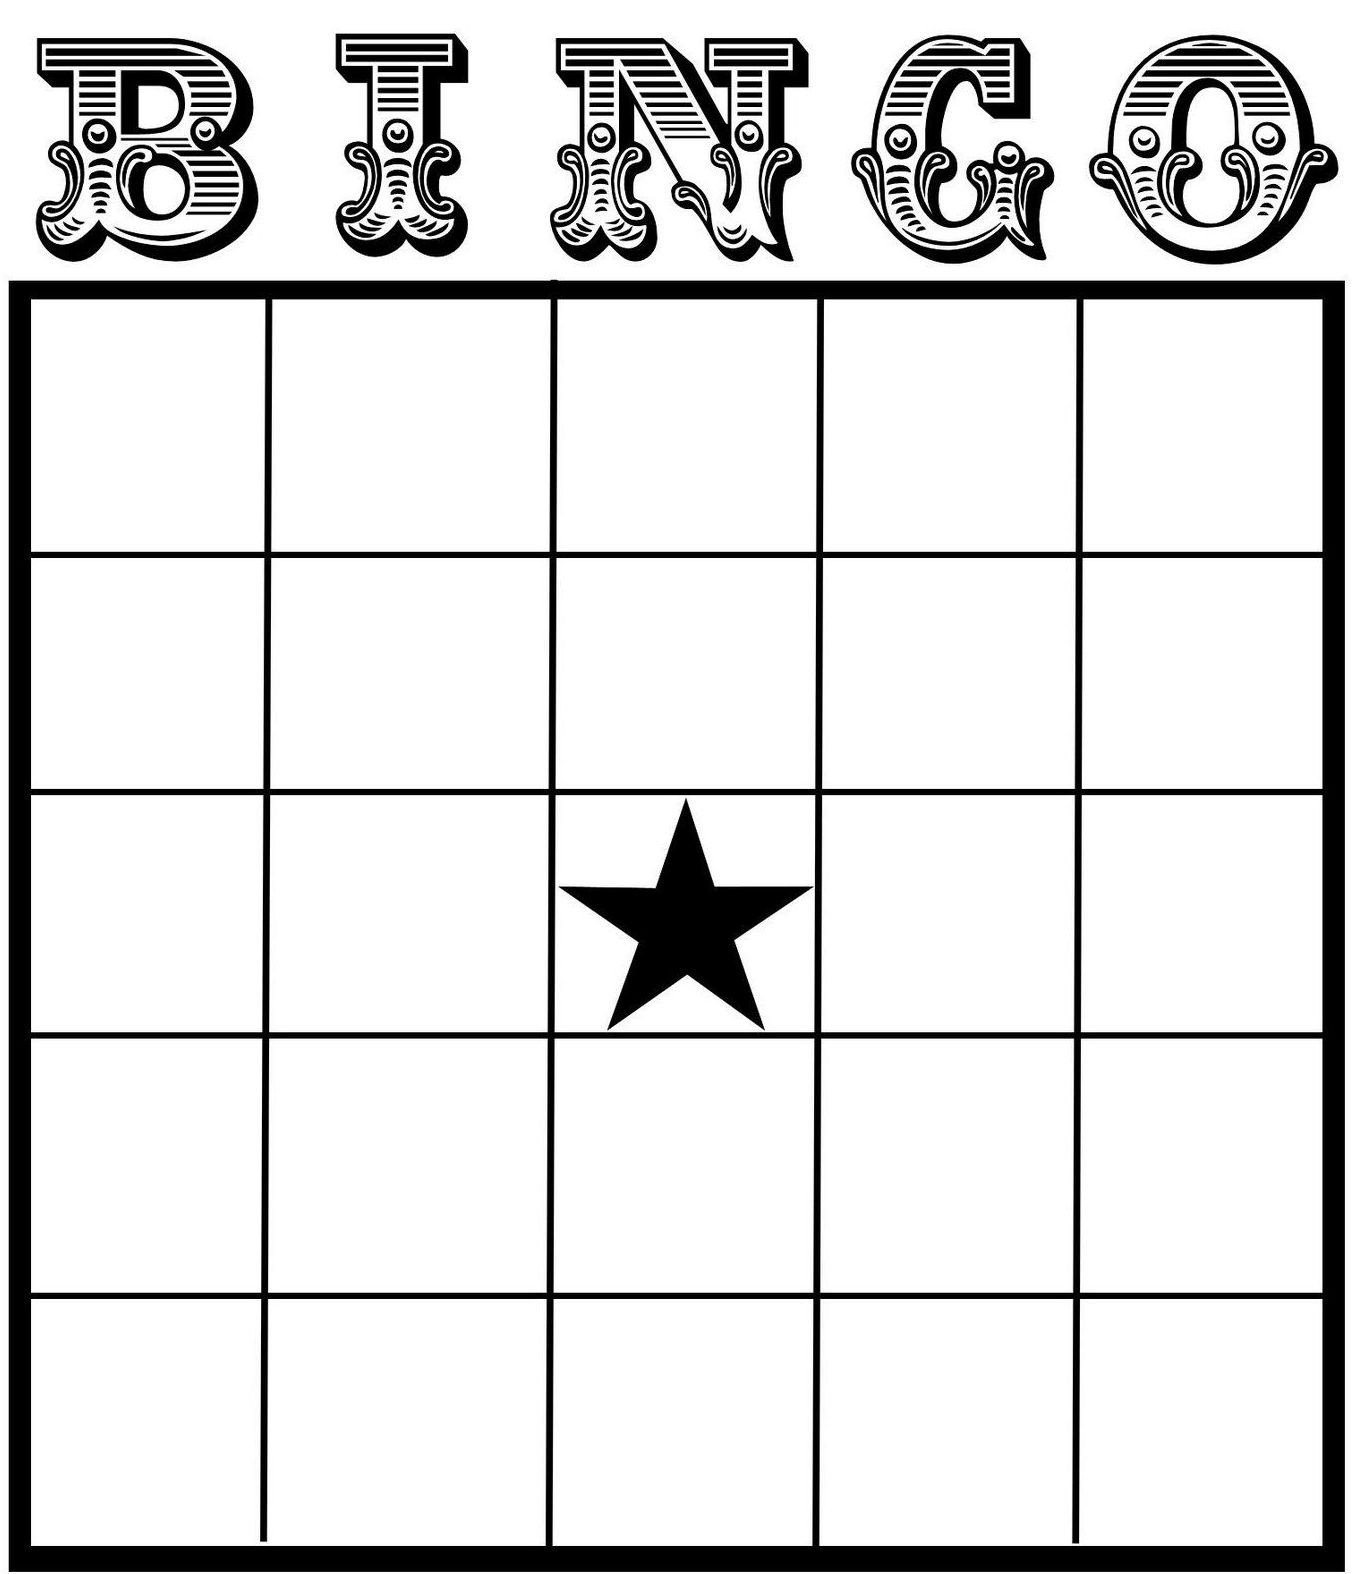 Free Bingo Card Template Free Printable Bingo Card Template Set Your Plan & Tasks